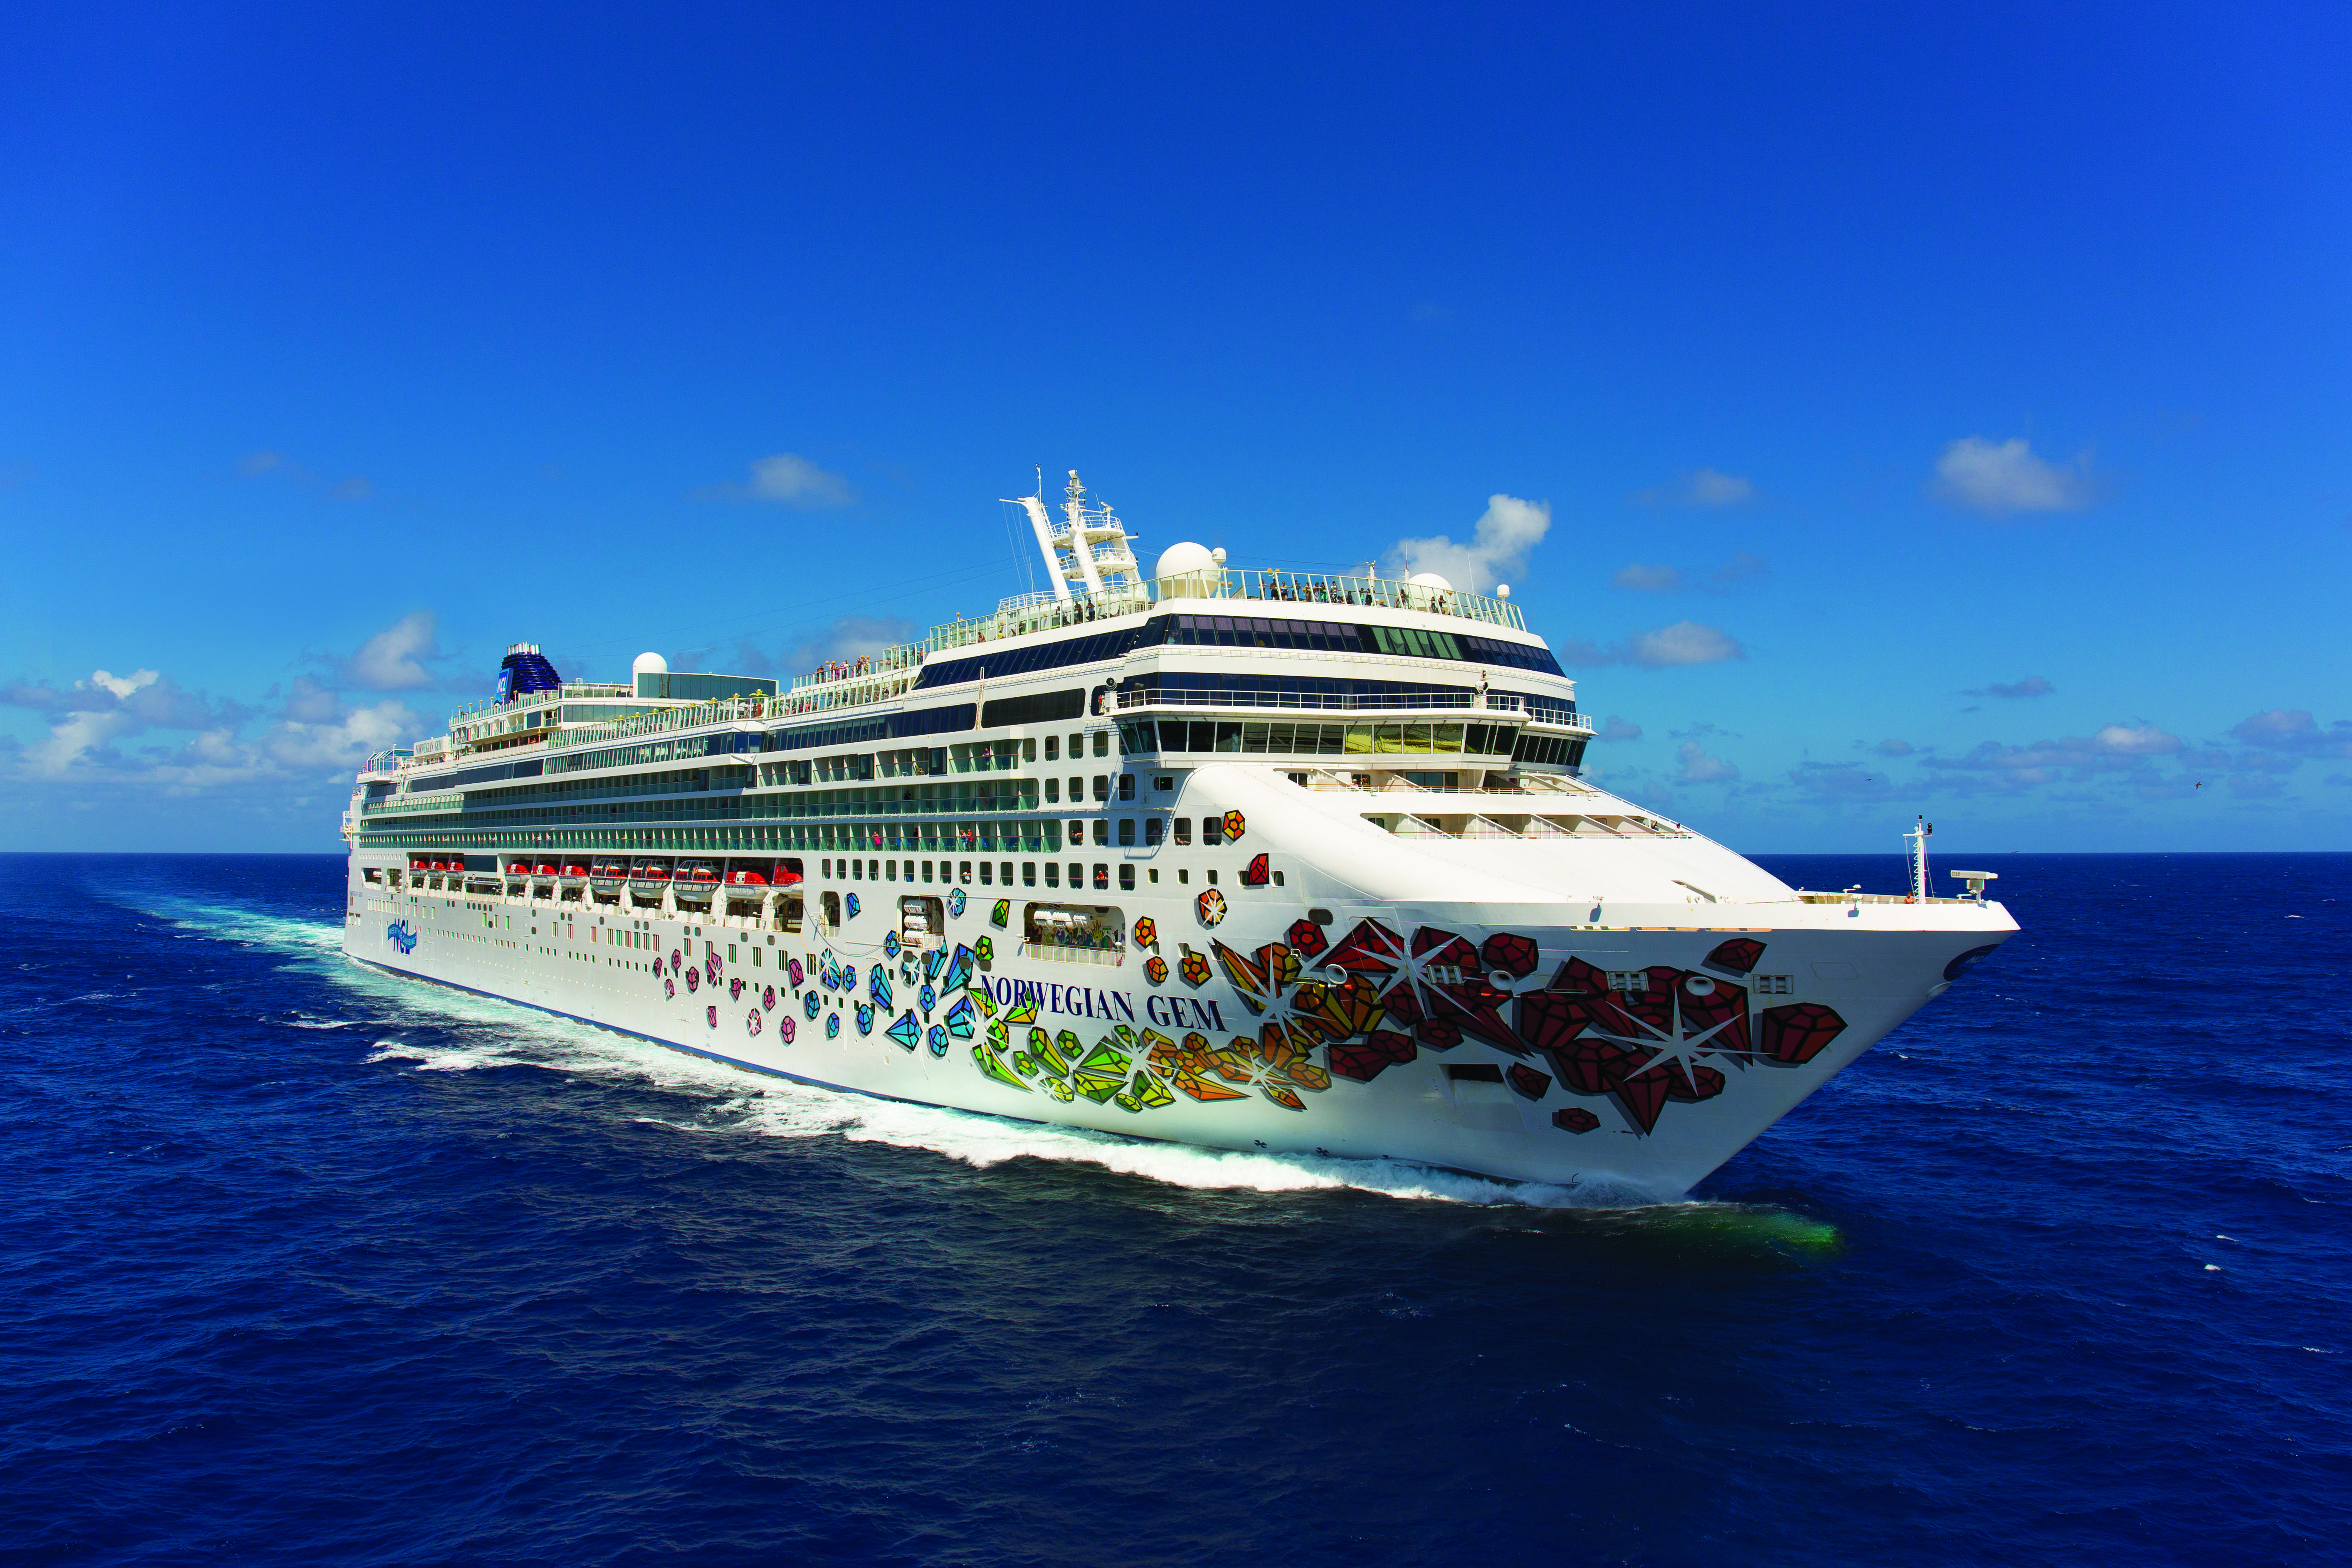 Norwegian NCL Norwegian Gem Cruise Ship Reviews UPDATED - Guest entertainers wanted for cruise ships